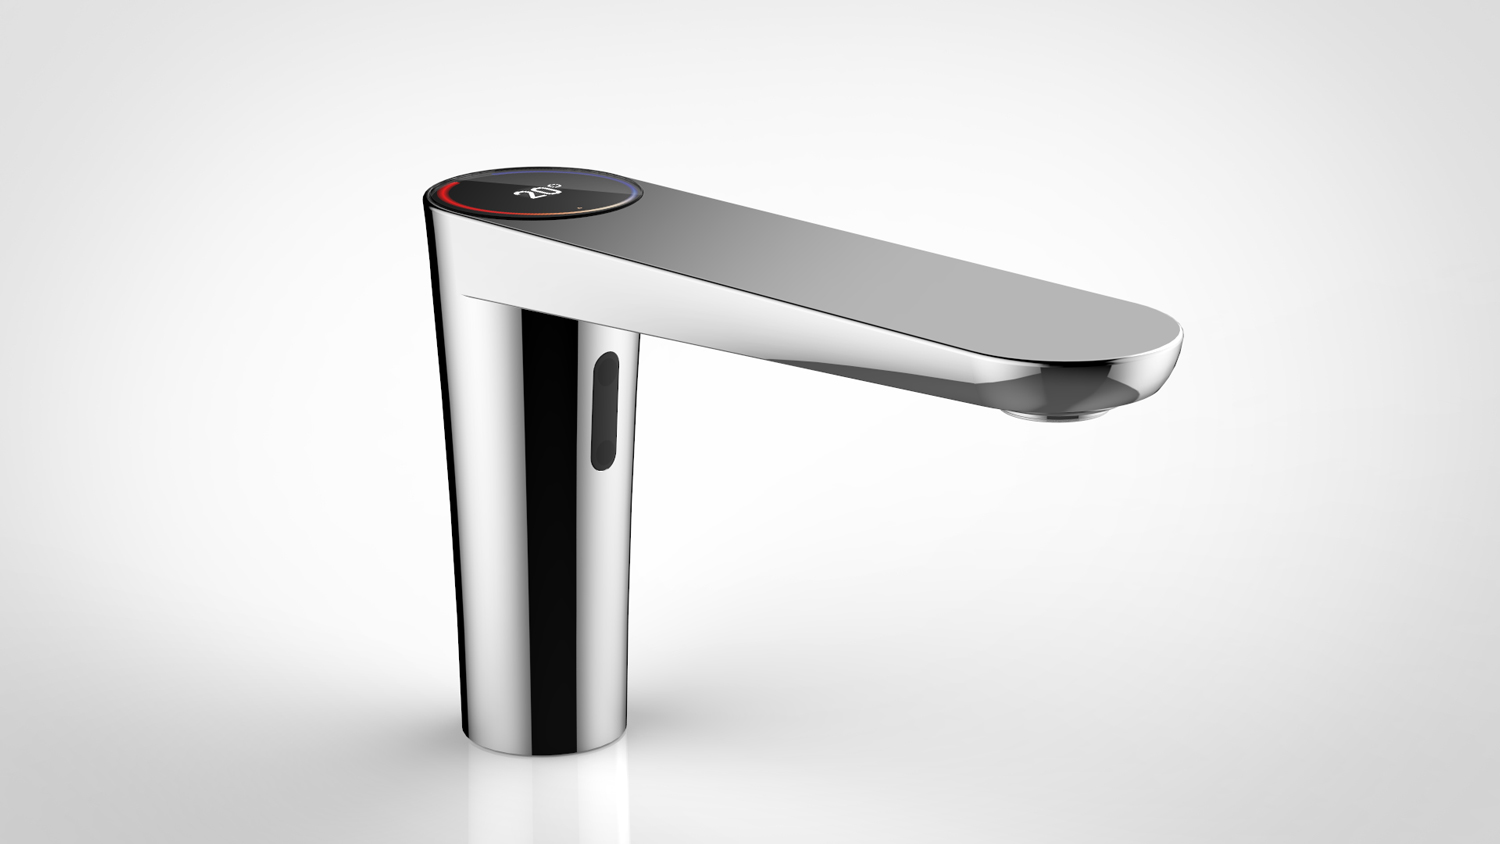 Smart_tap_design_product_tech_public_bathroom